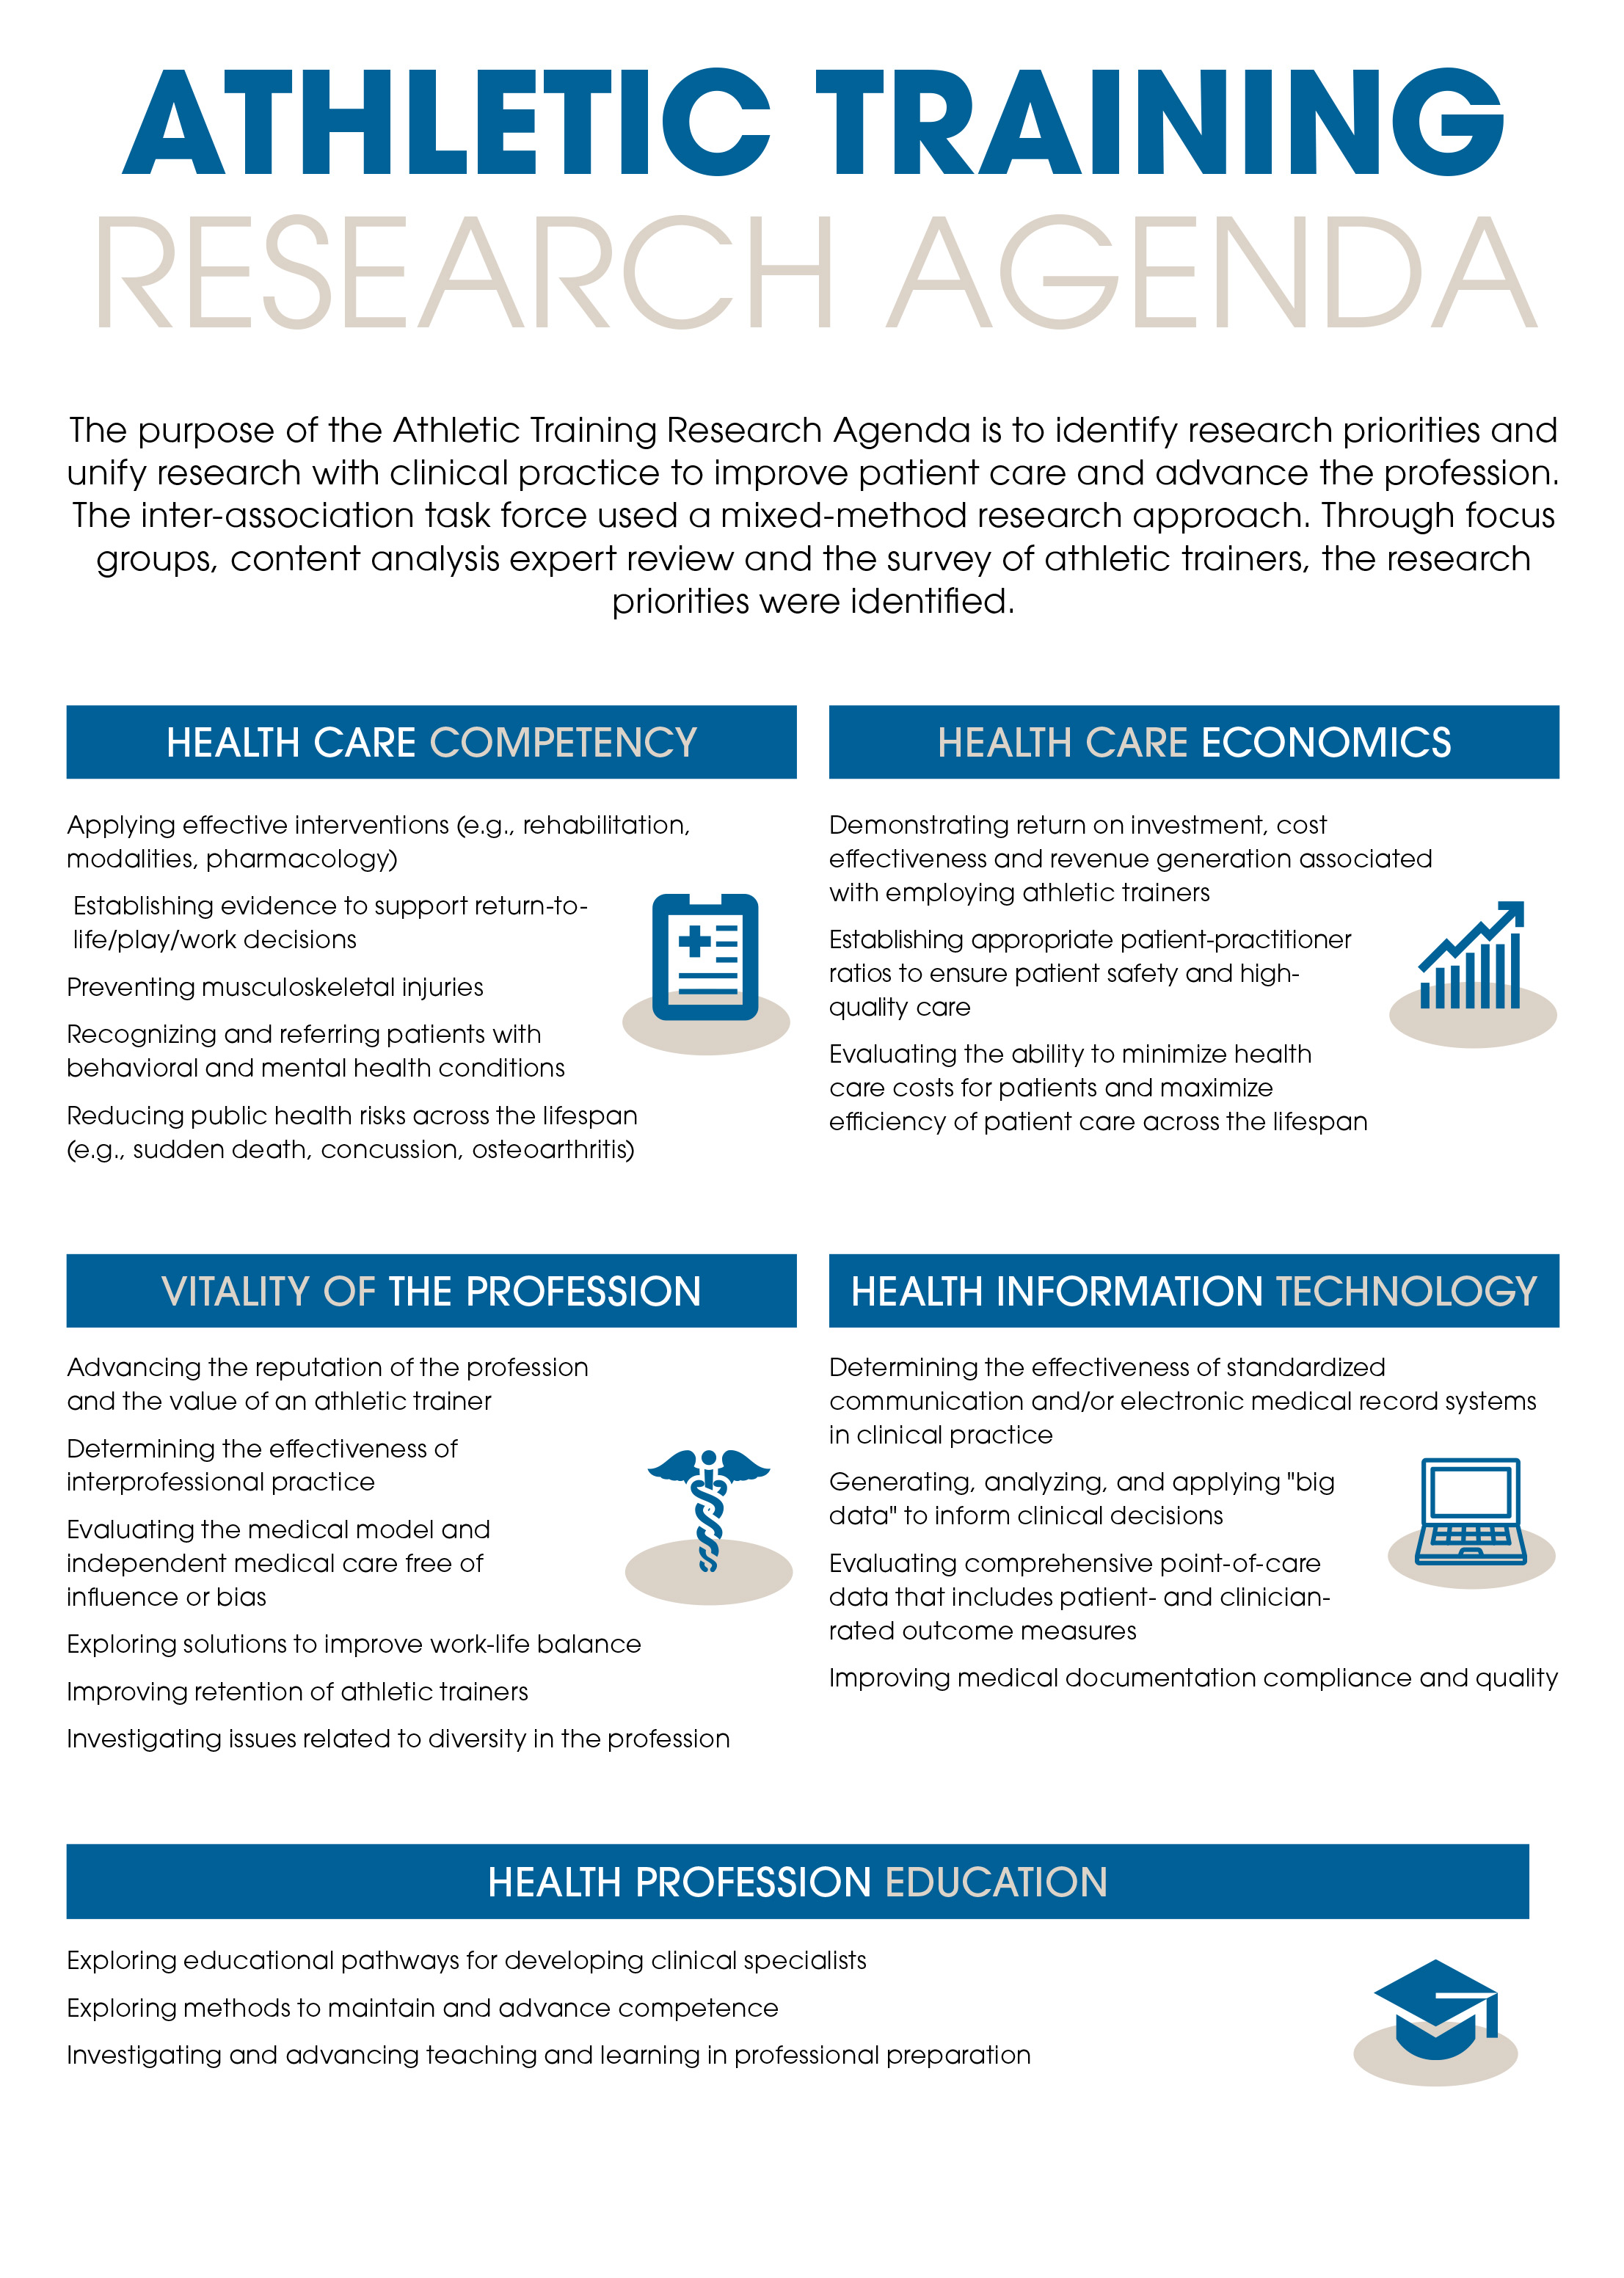 Athletic Training Research Agenda Infographic Handout